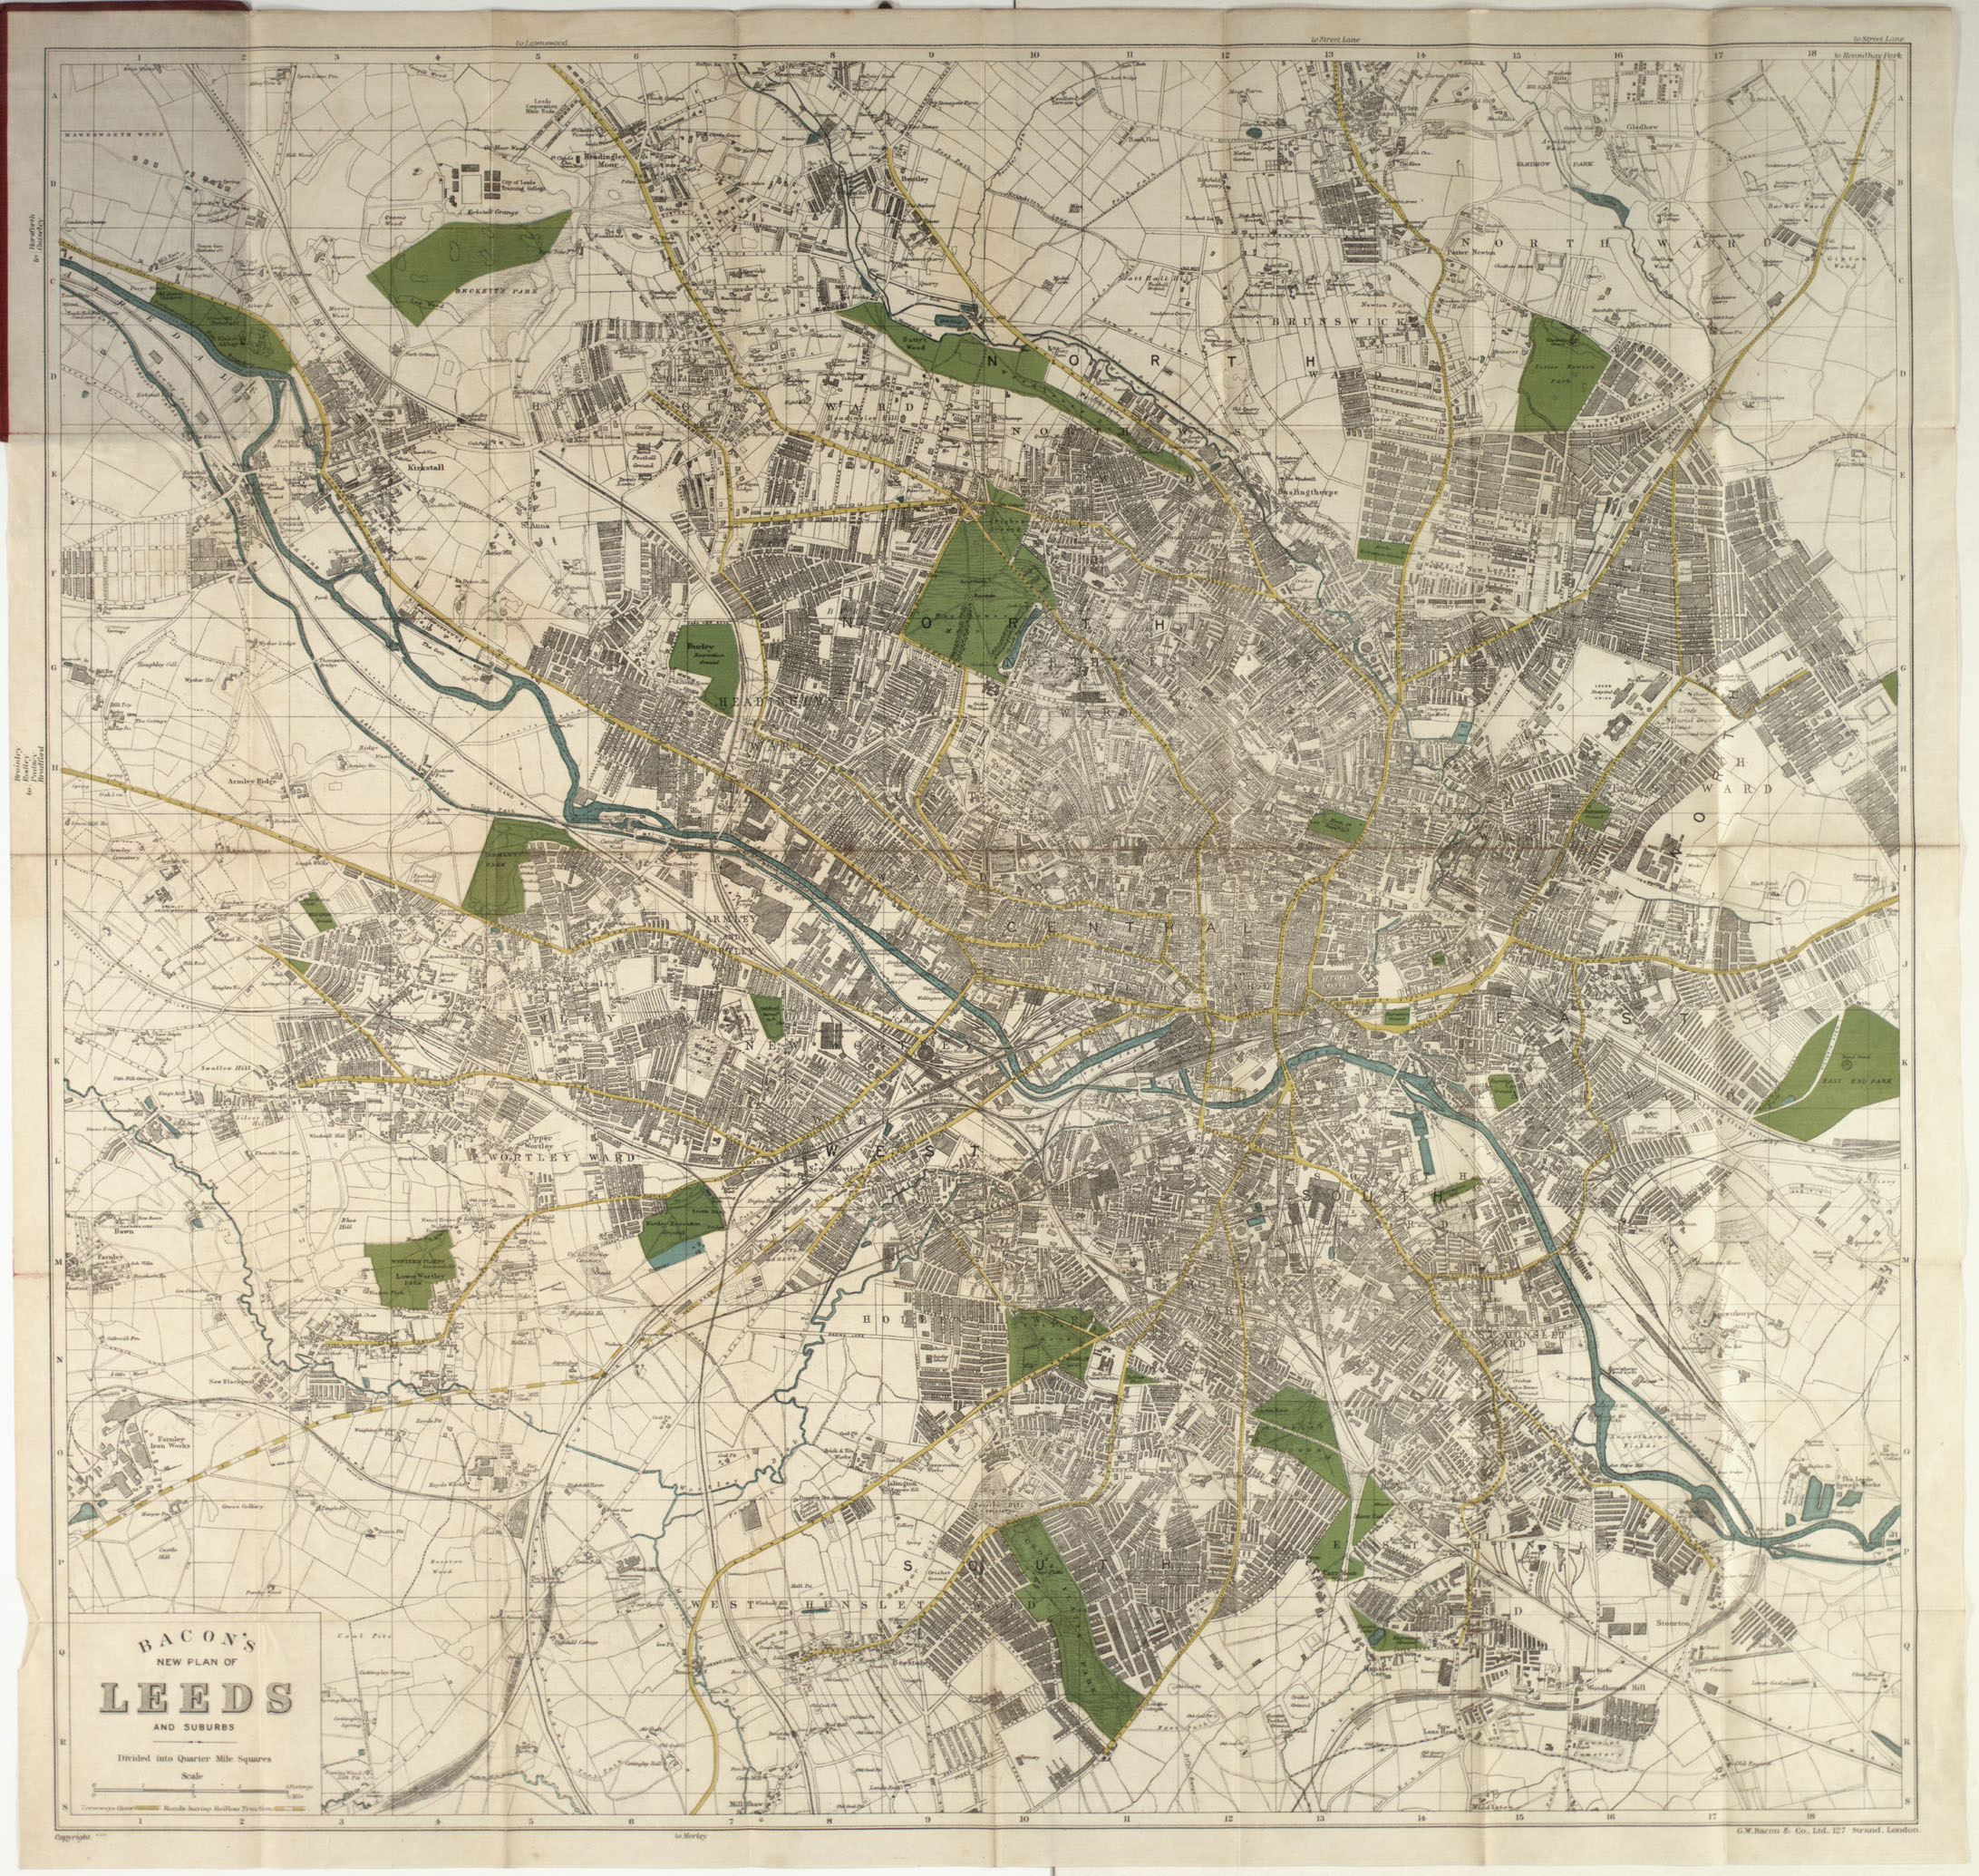 Map showing the city of Leeds, dated between 1910 and 1920.